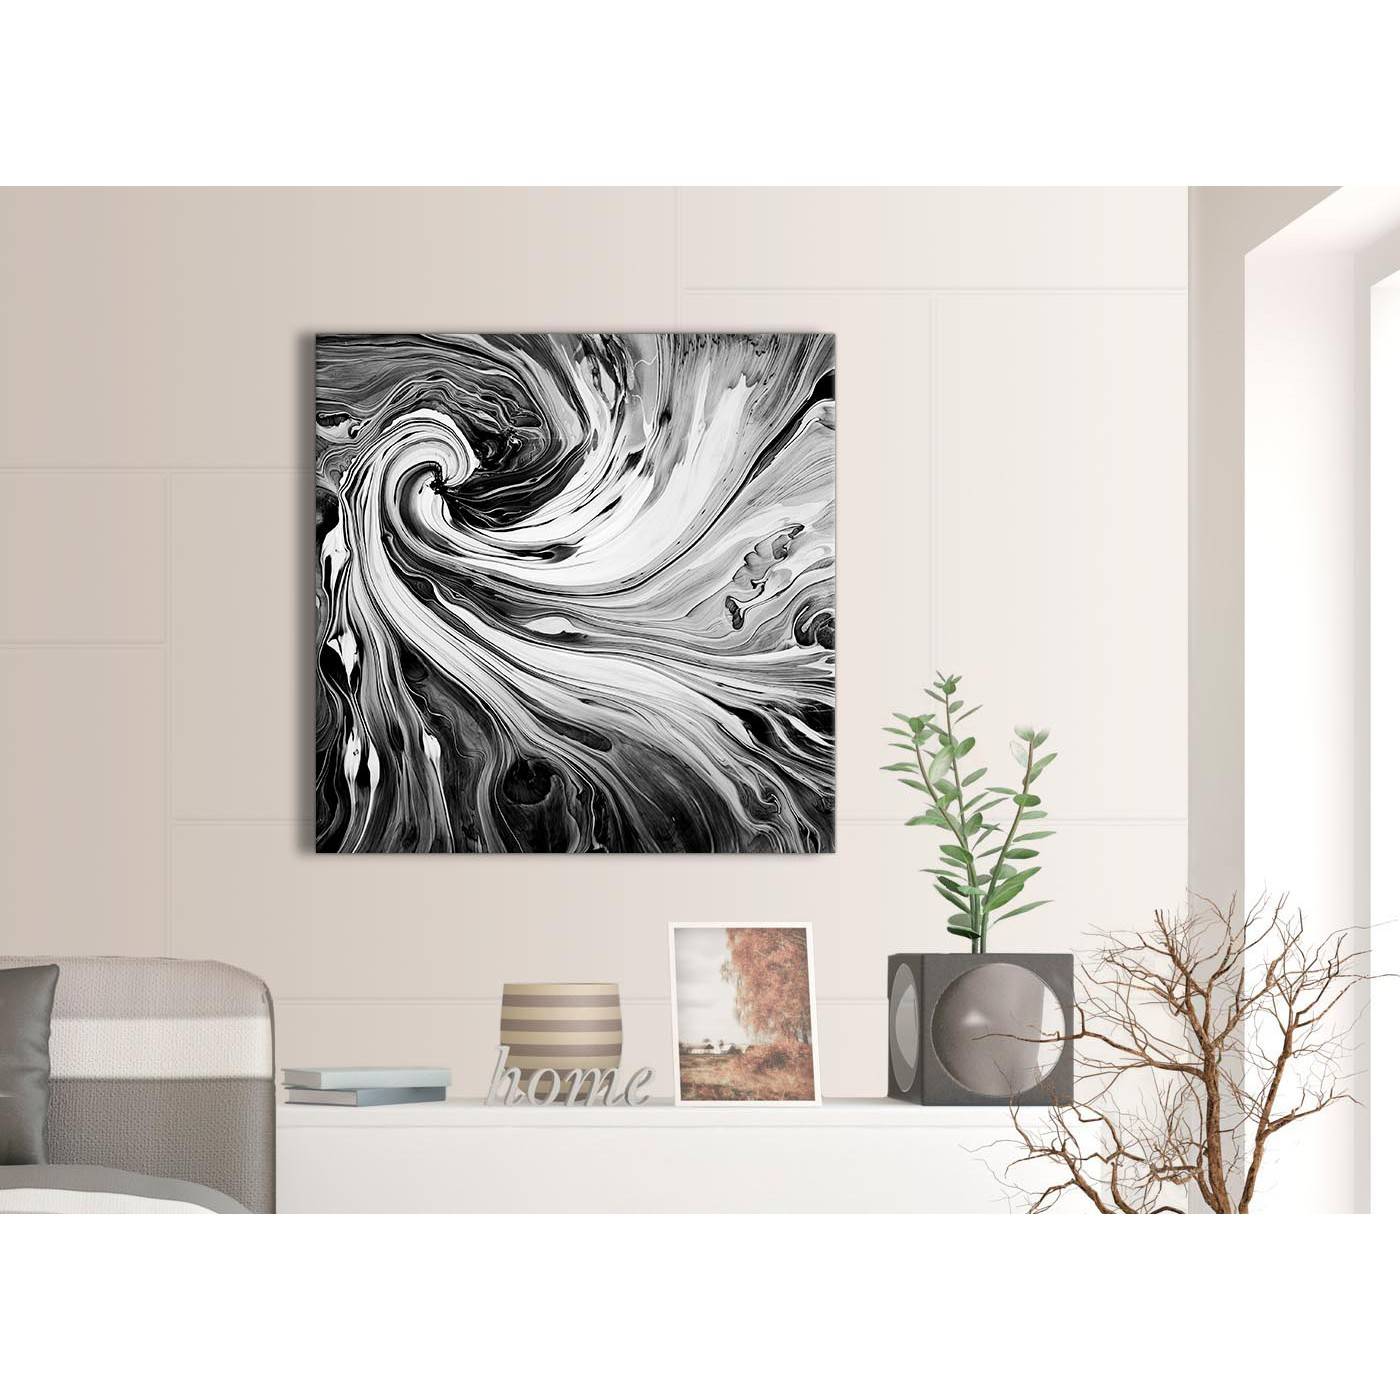 Display gallery item 3 · contemporary black white grey swirls modern abstract canvas wall art modern 79cm square 1s354l for your display gallery item 4